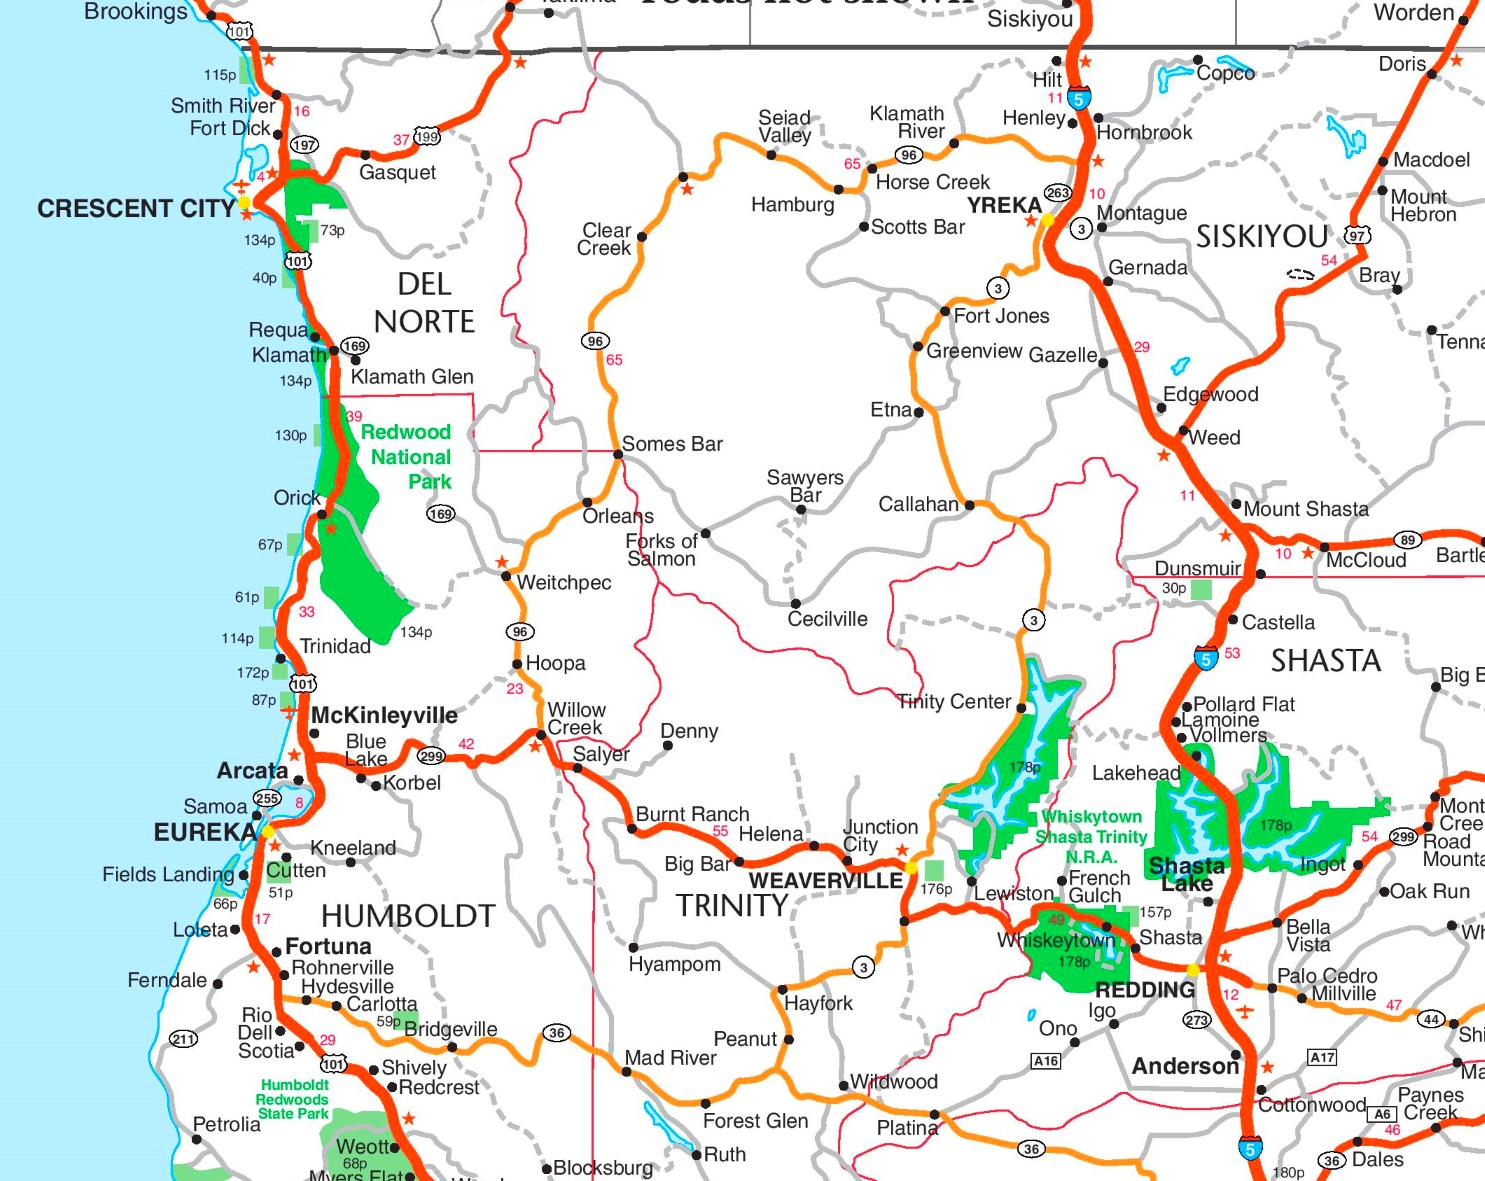 Redwood National Park area road map